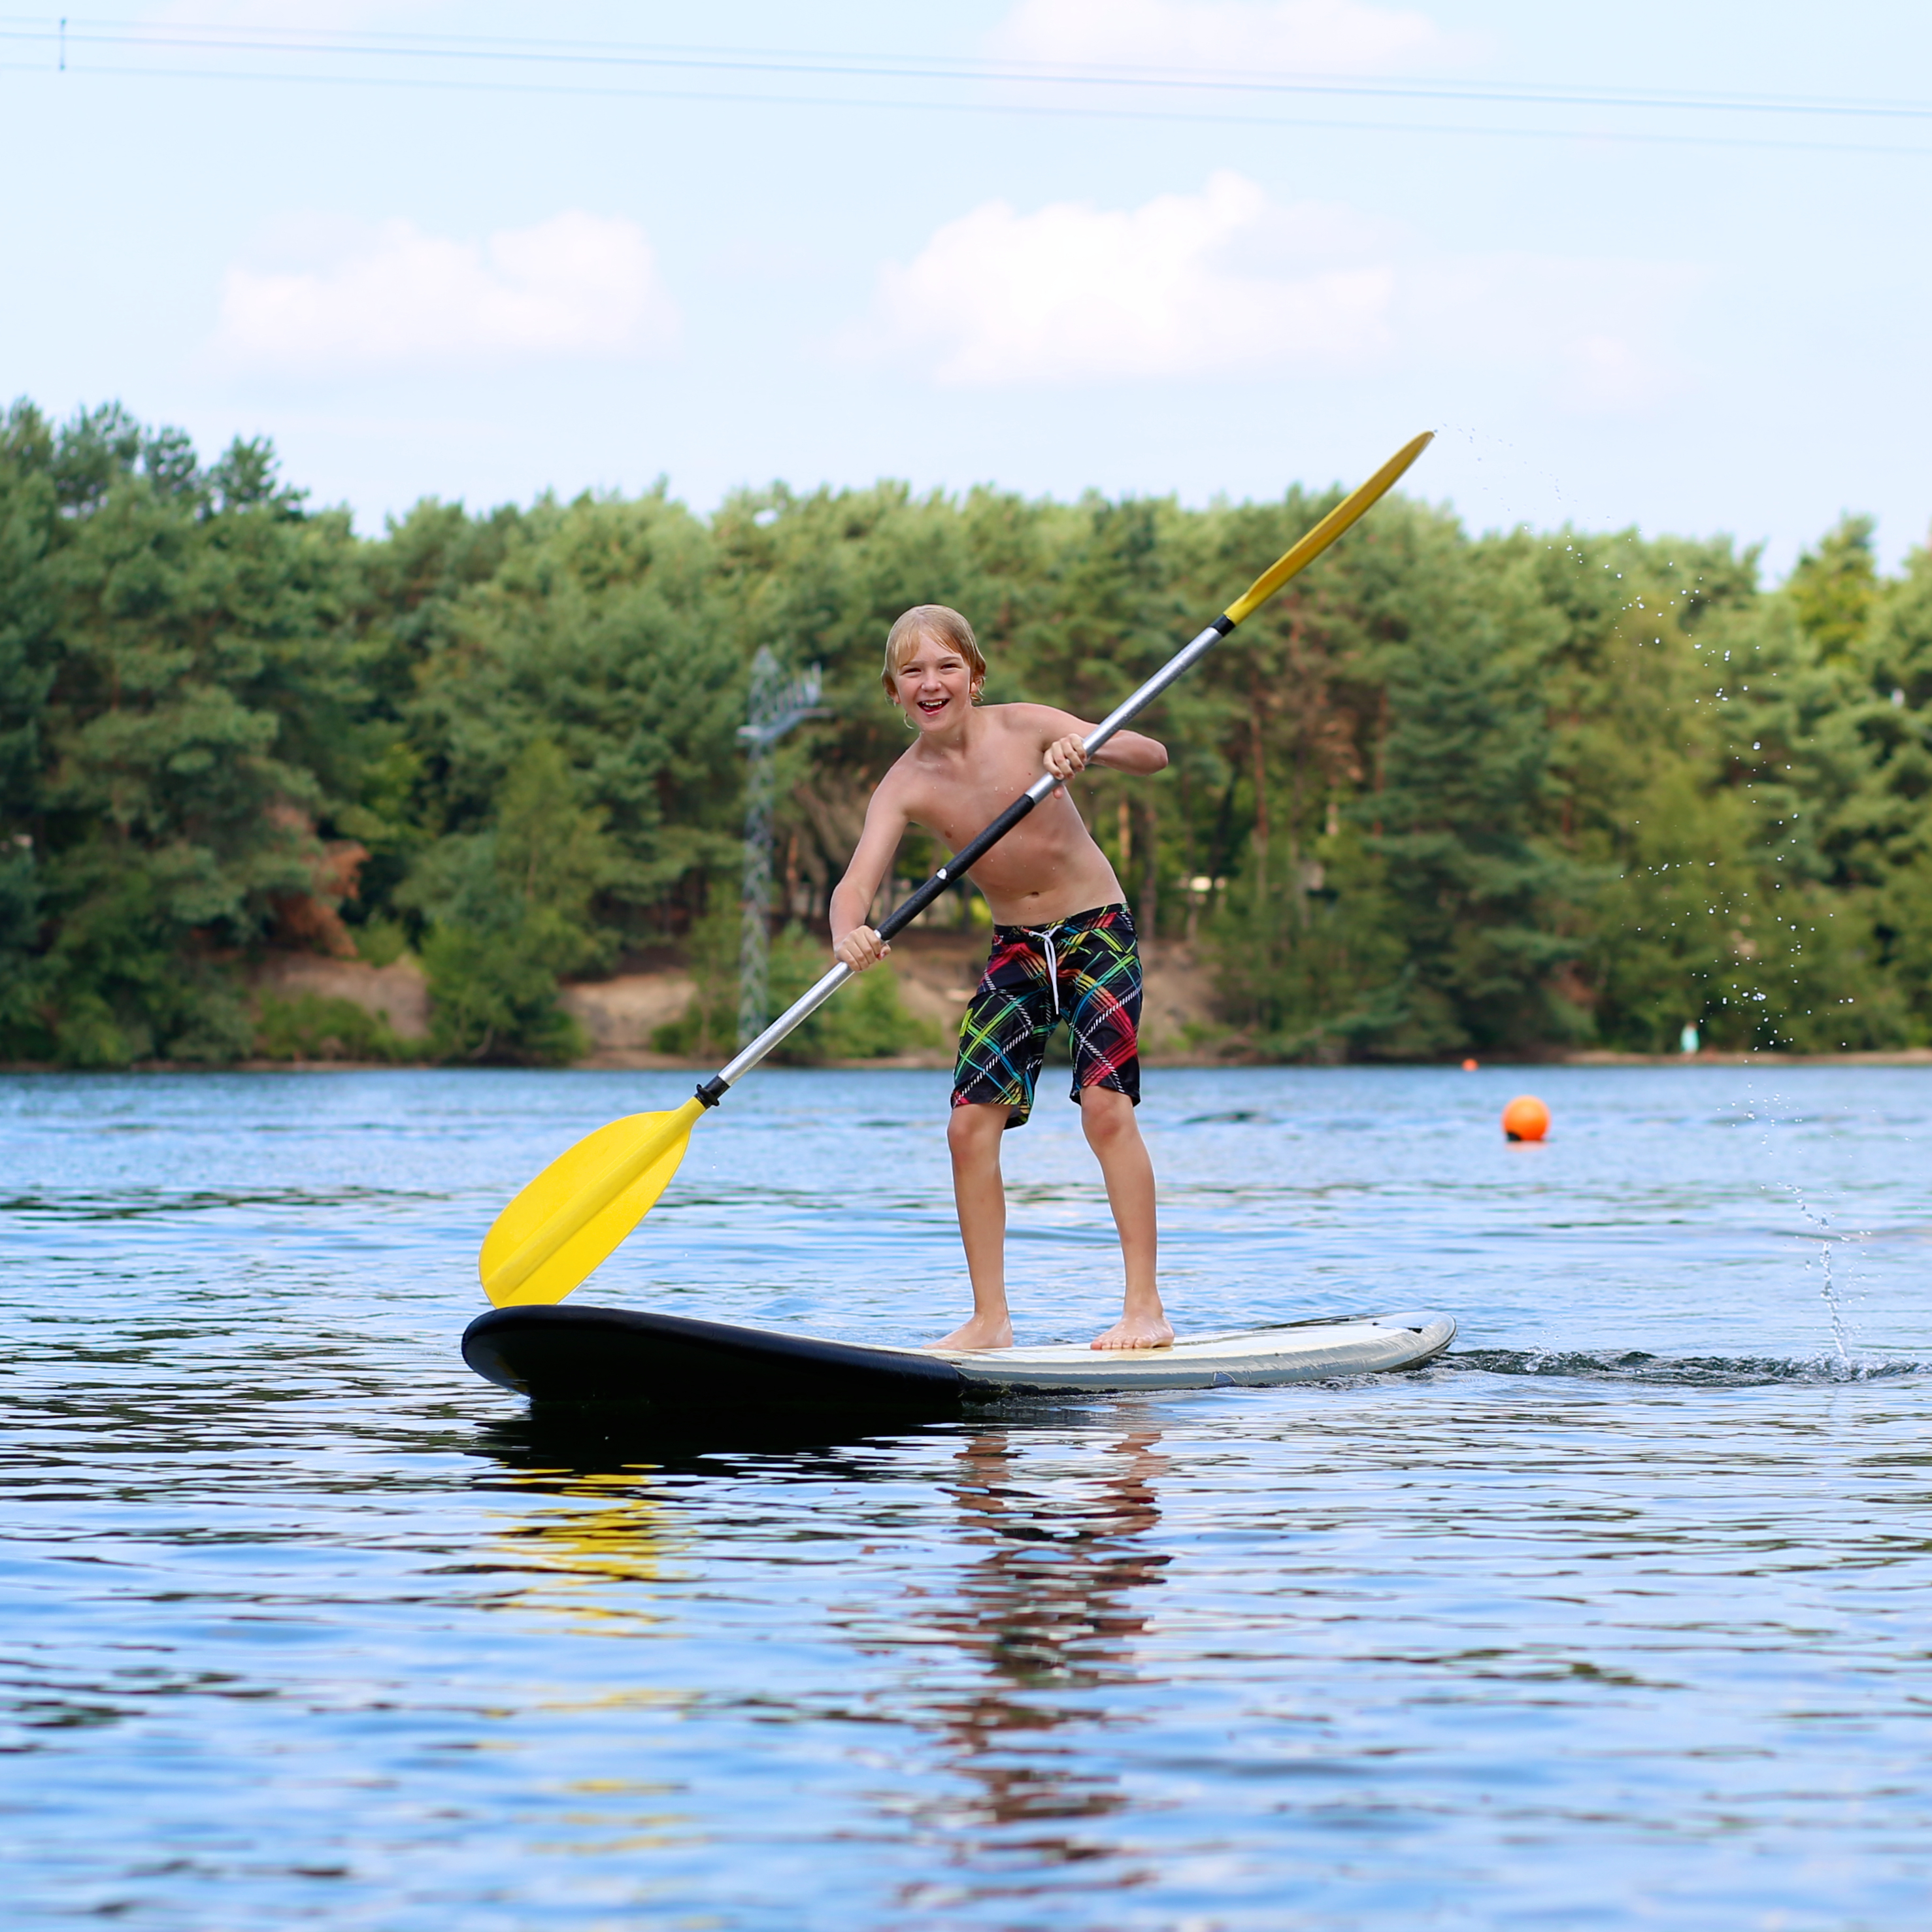 Paddle board (old stock image)